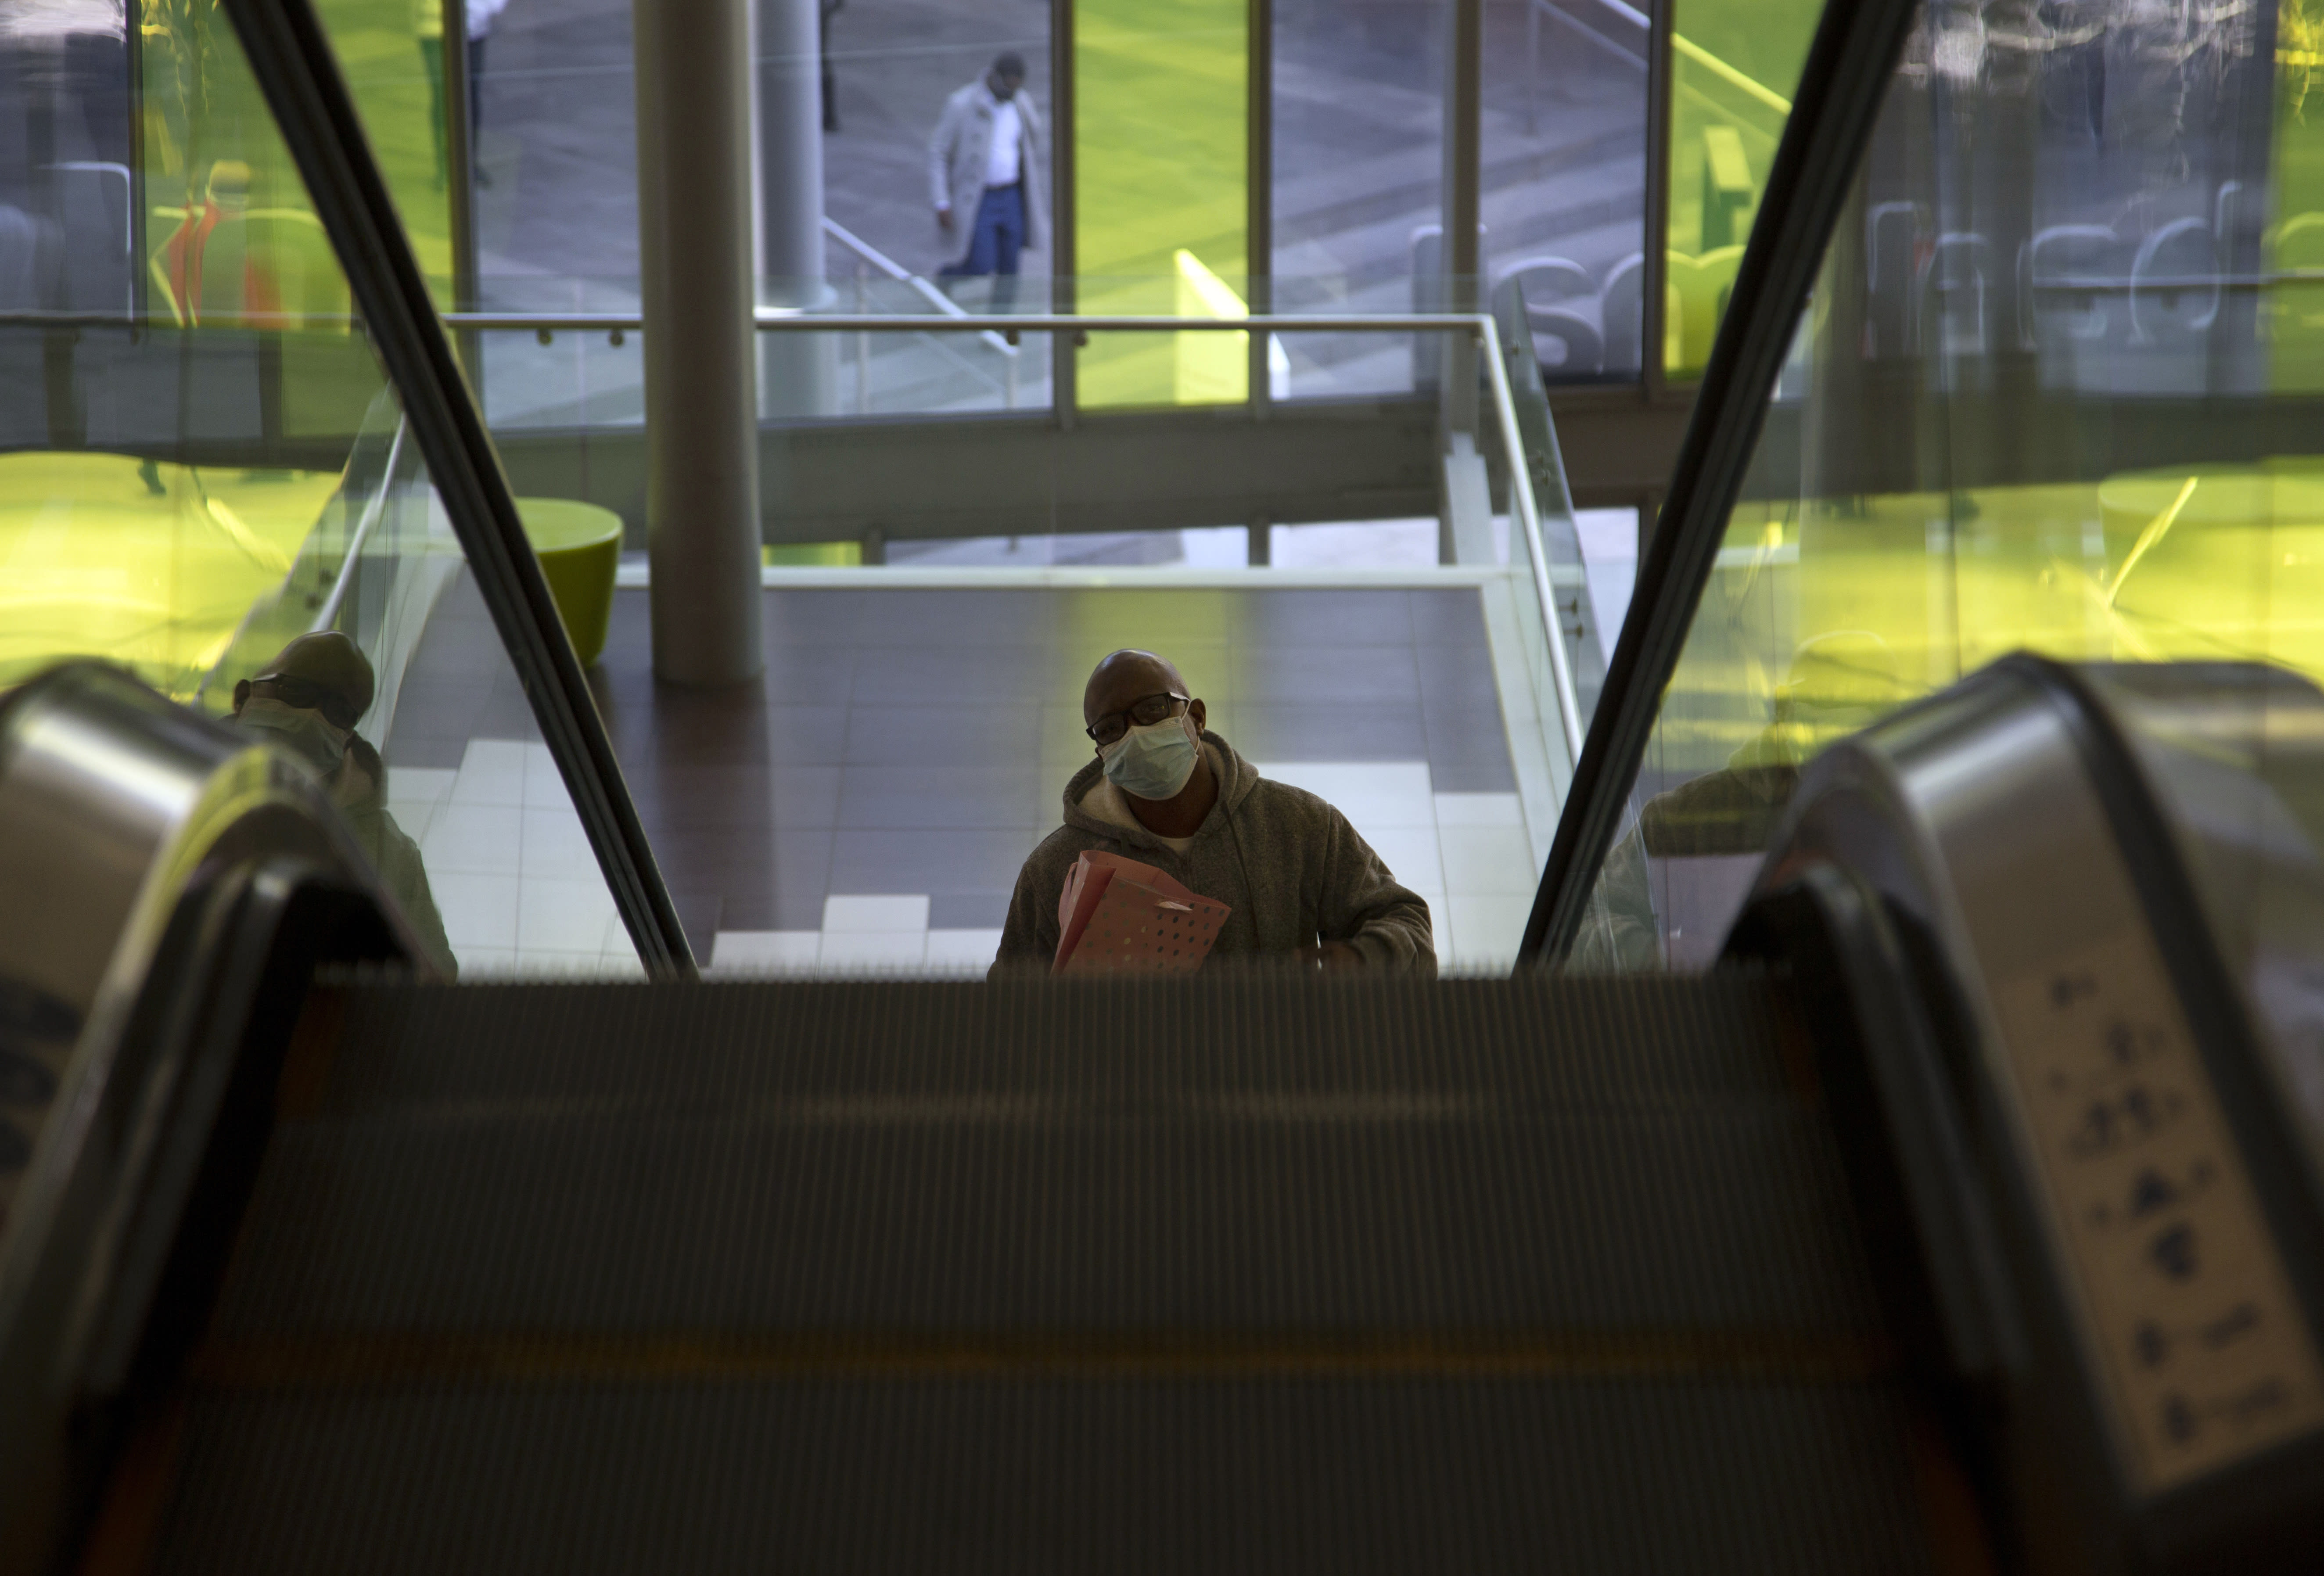 A masked man rides on an escalator in a mall in Johannesburg, Tuesday, July 14, 2020. The government has ruled it compulsory for people to wear face coverings in a bid to control the spread of COVID-19 as the country heads towards its coronavirus peak. (AP Photo Denis Farrell)